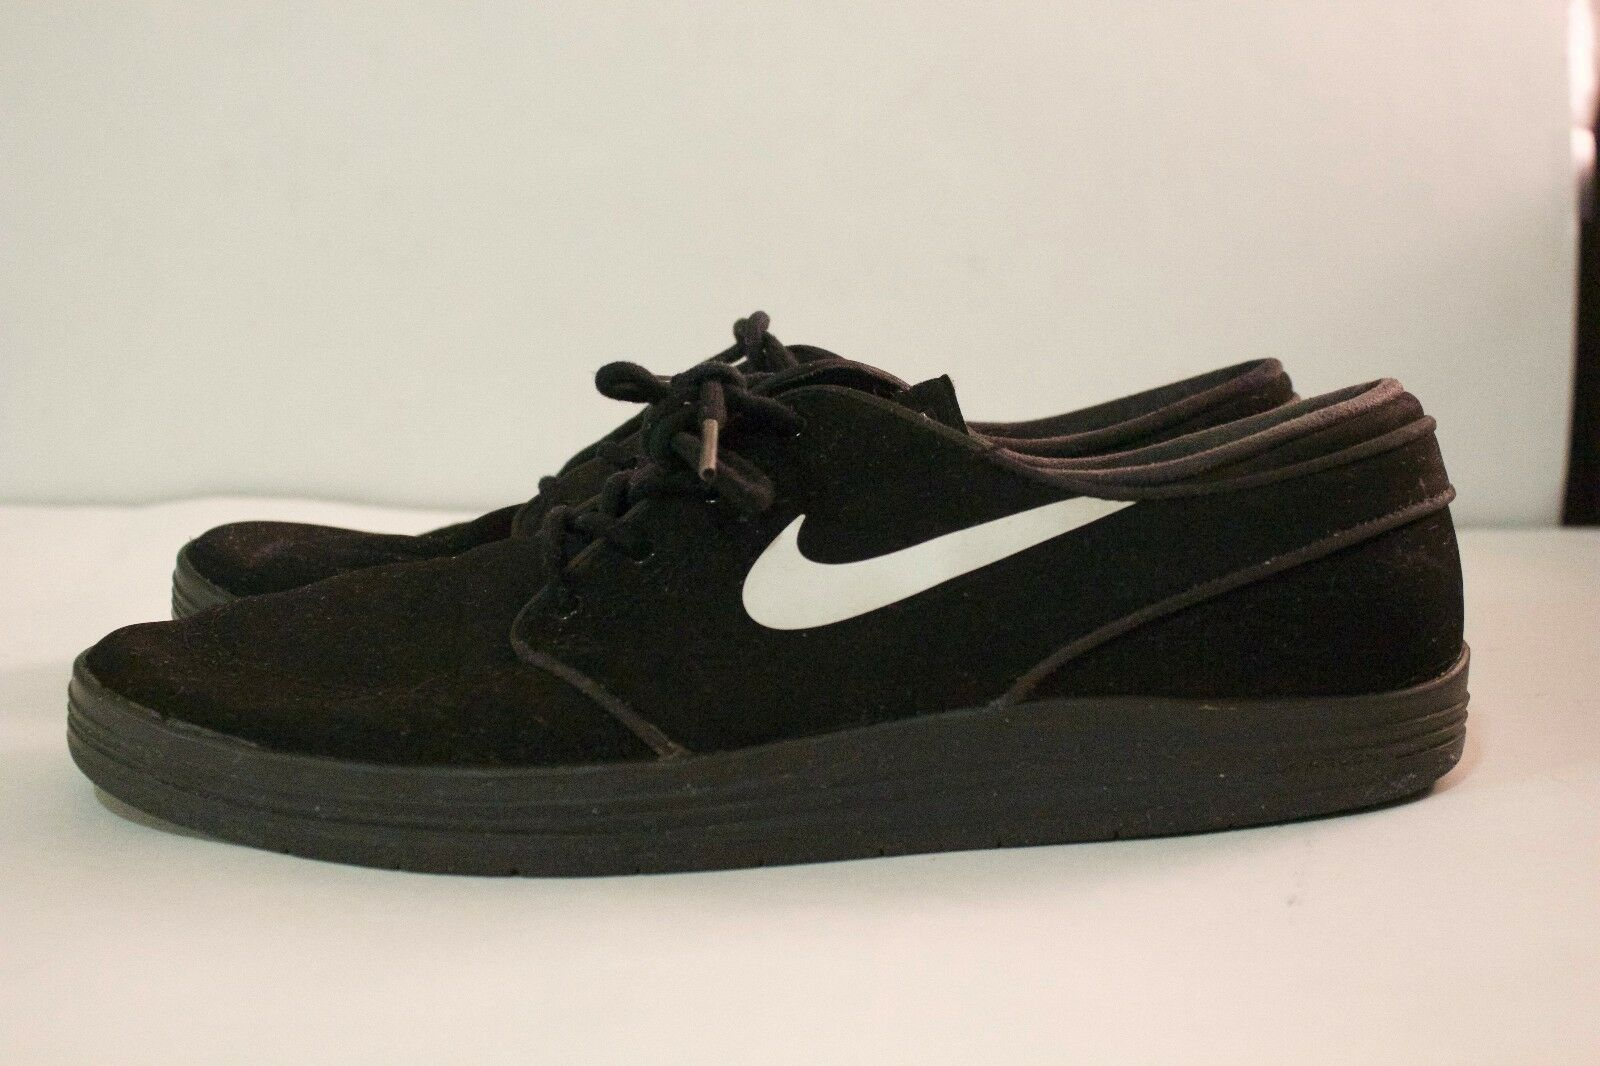 New shoes for men and women, limited time discount Men NIKE STEFAN JANOSKI SKATEBOARDING Shoes Comfortable